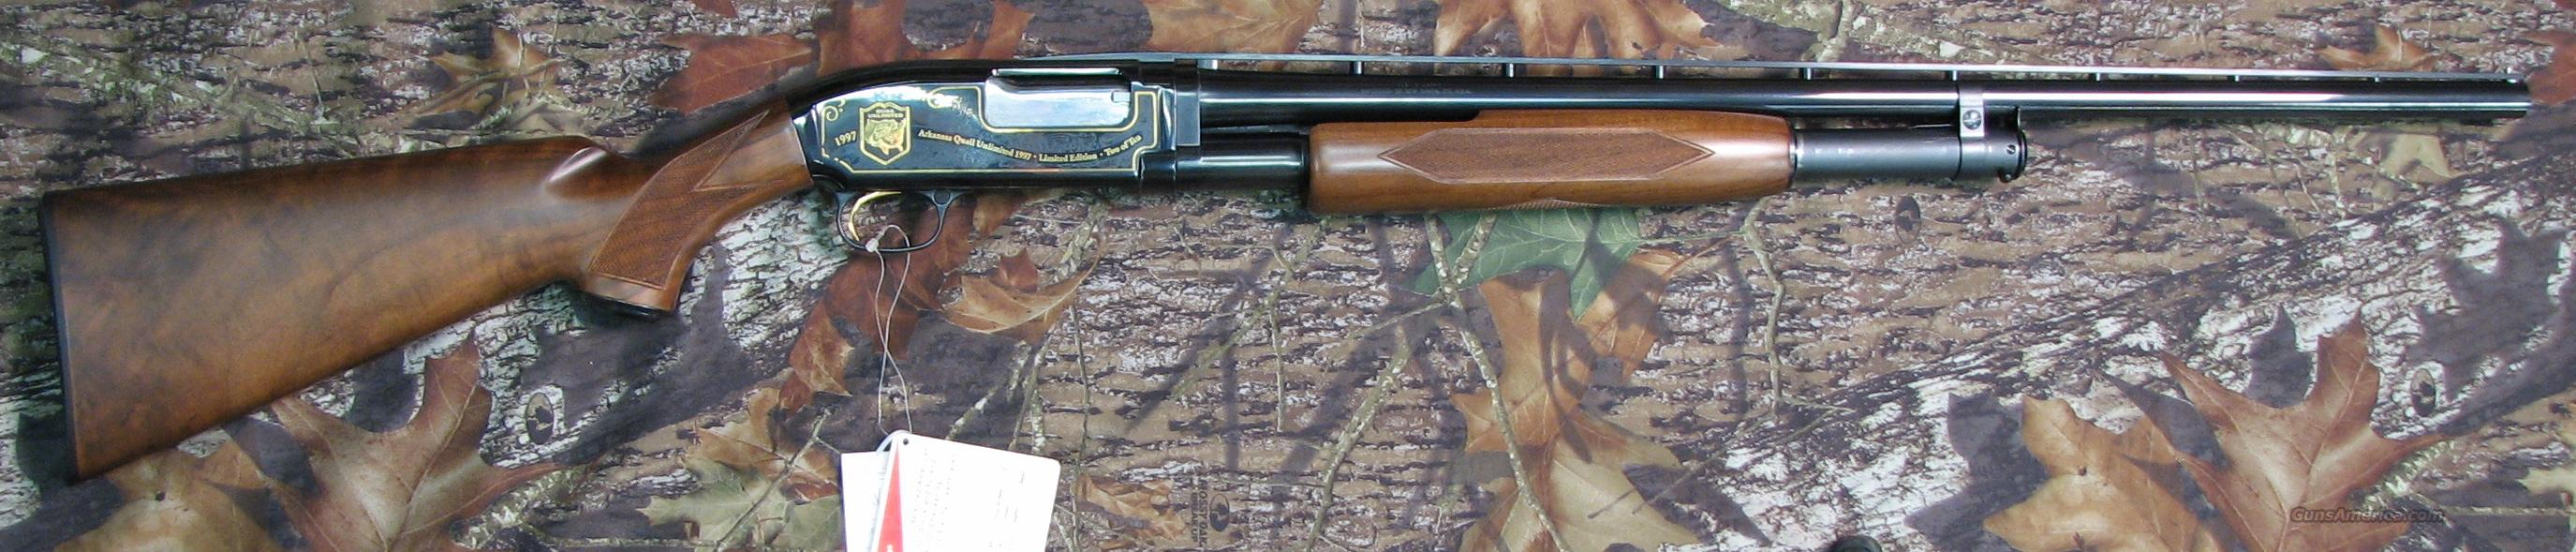 1997 Arkansas Quail Unlimited Mod 12 Winchester  Guns > Shotguns > Winchester Shotgun Commemoratives